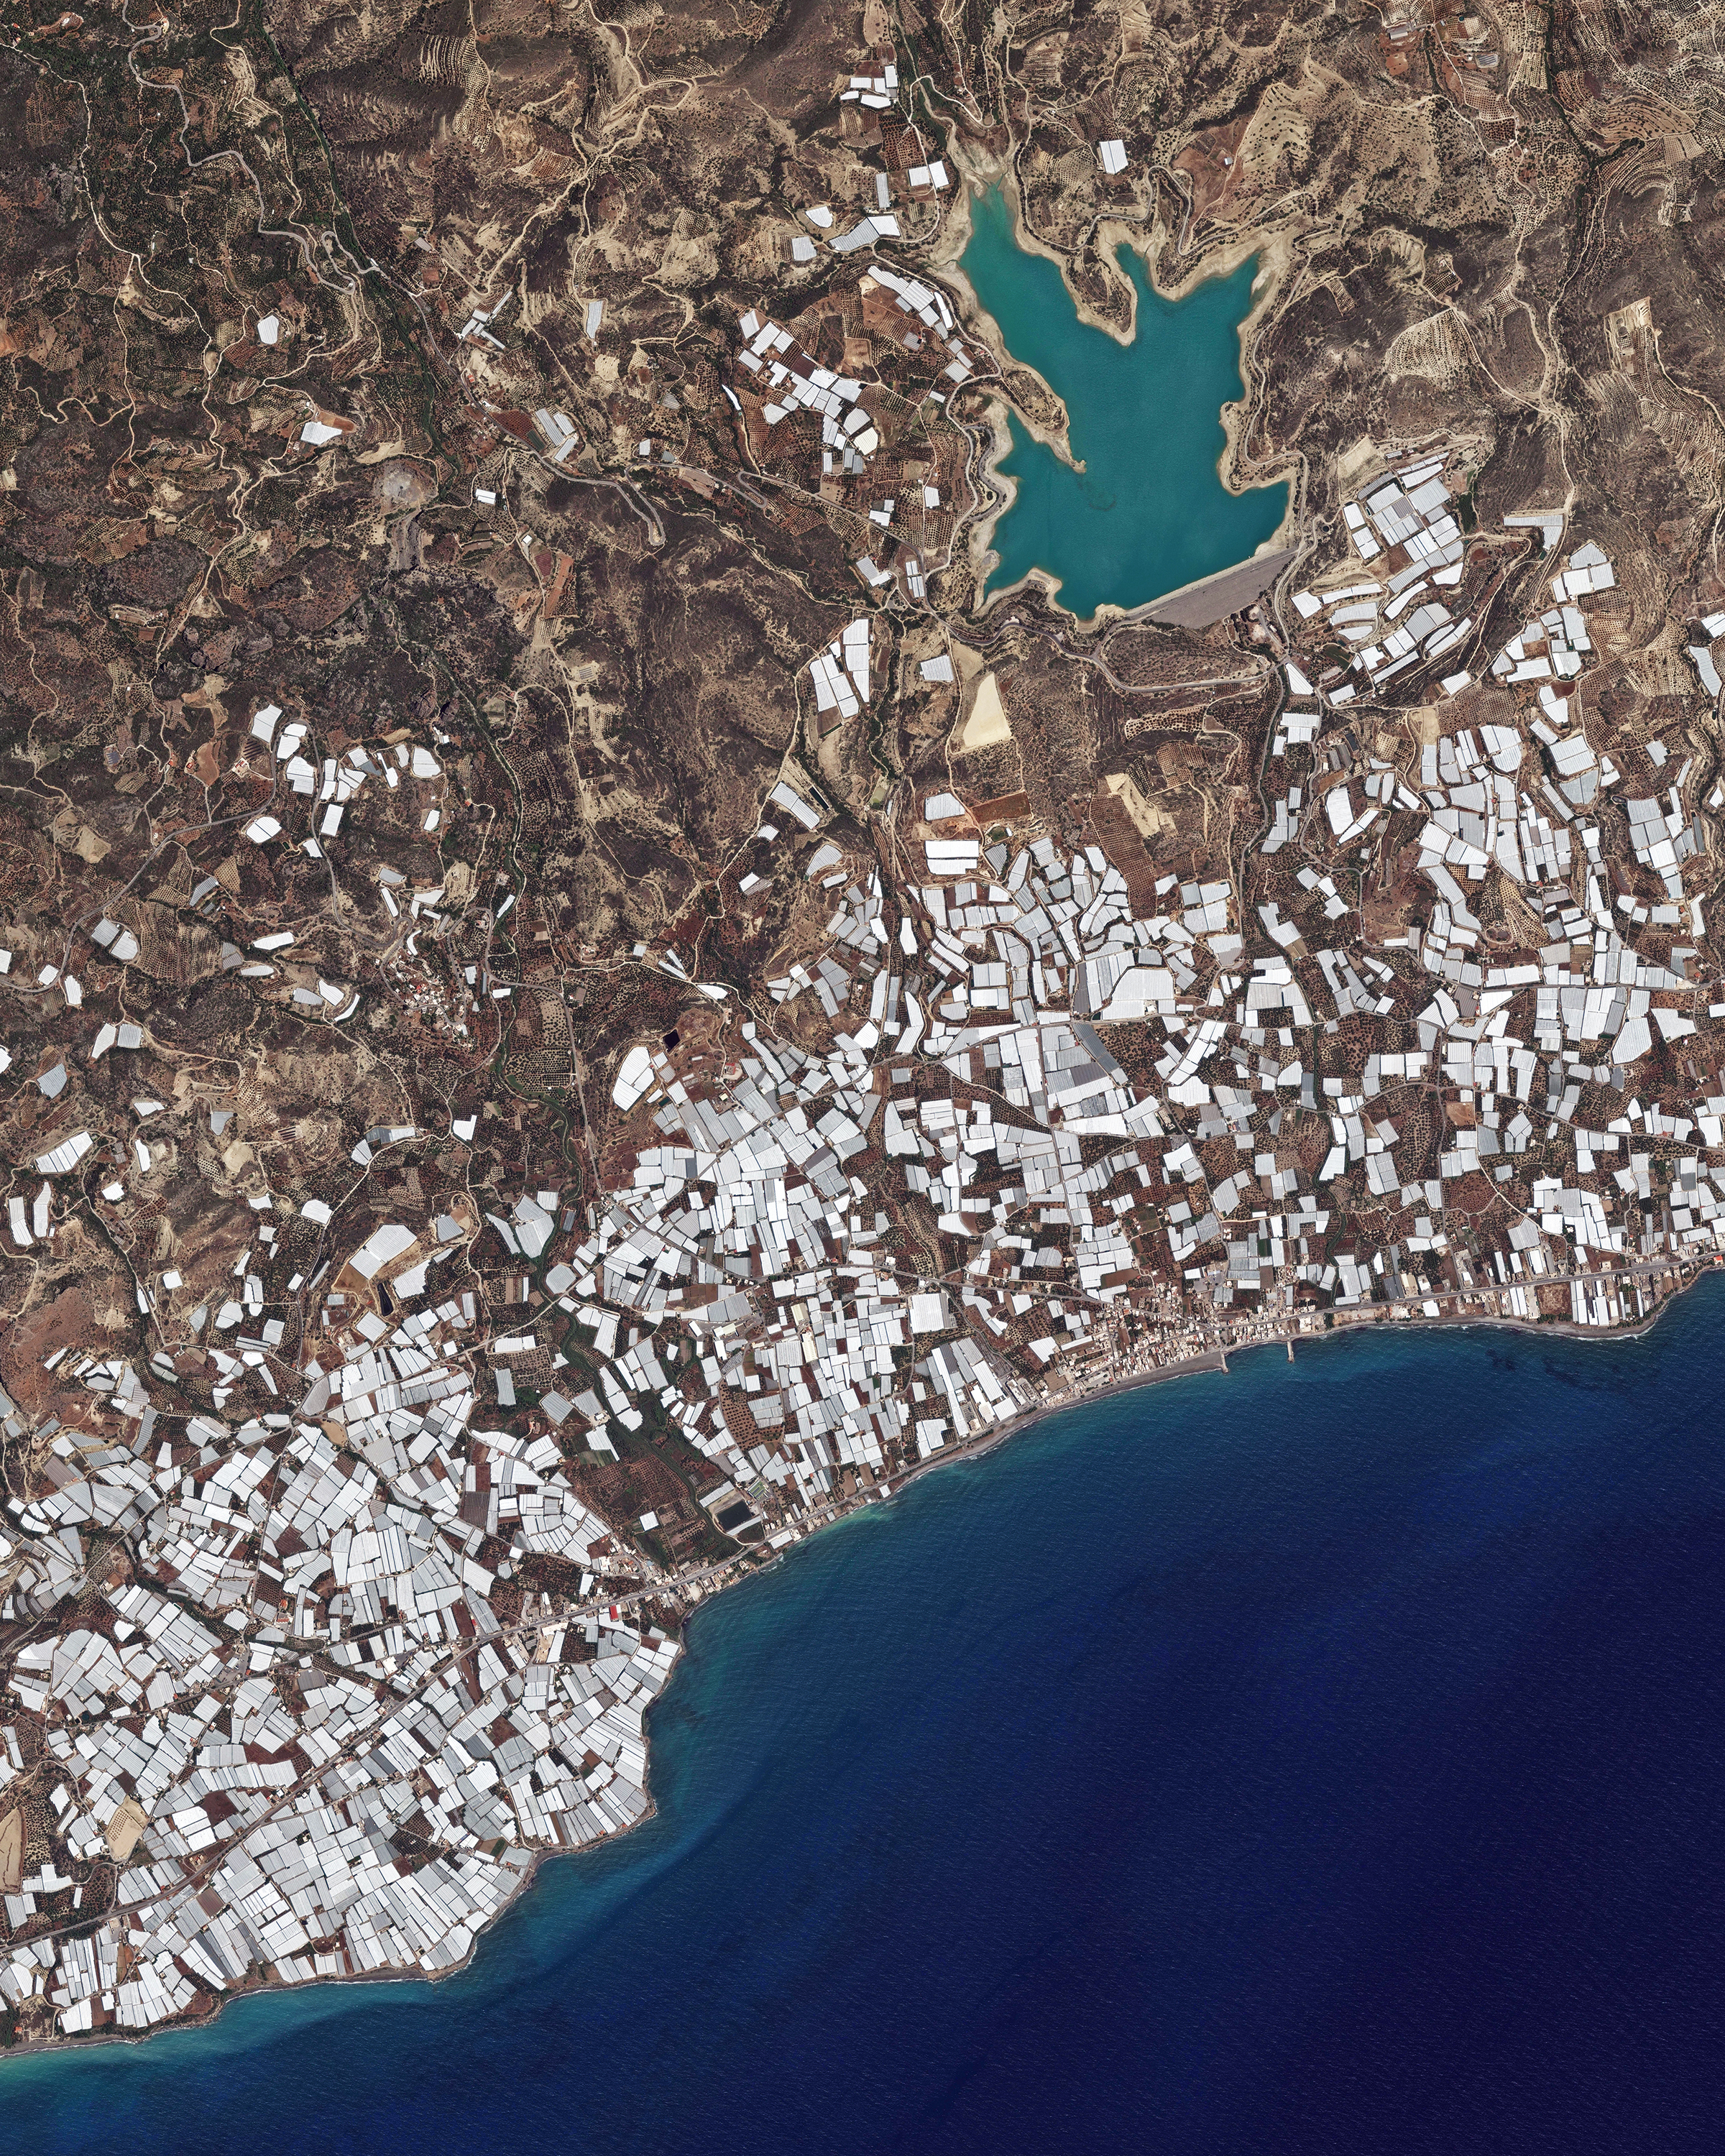 """Plastic greenhouses cover a stretch of shoreline on the south coast of Crete — the largest and most populous of the Greek islands. Inside these greenhouses, which cover an area of roughly 6 square miles (15 sq. km), large quantities of fruits and vegetables are grown for export. In the upper right corner of this Overview is the Bramiana Reservoir, which was built in 1986 to meet the needs of the thousands of greenhouses surrounding it.  35°01'45.4""""N, 25°41'46.0""""E  Source imagery: DigitalGlobe"""